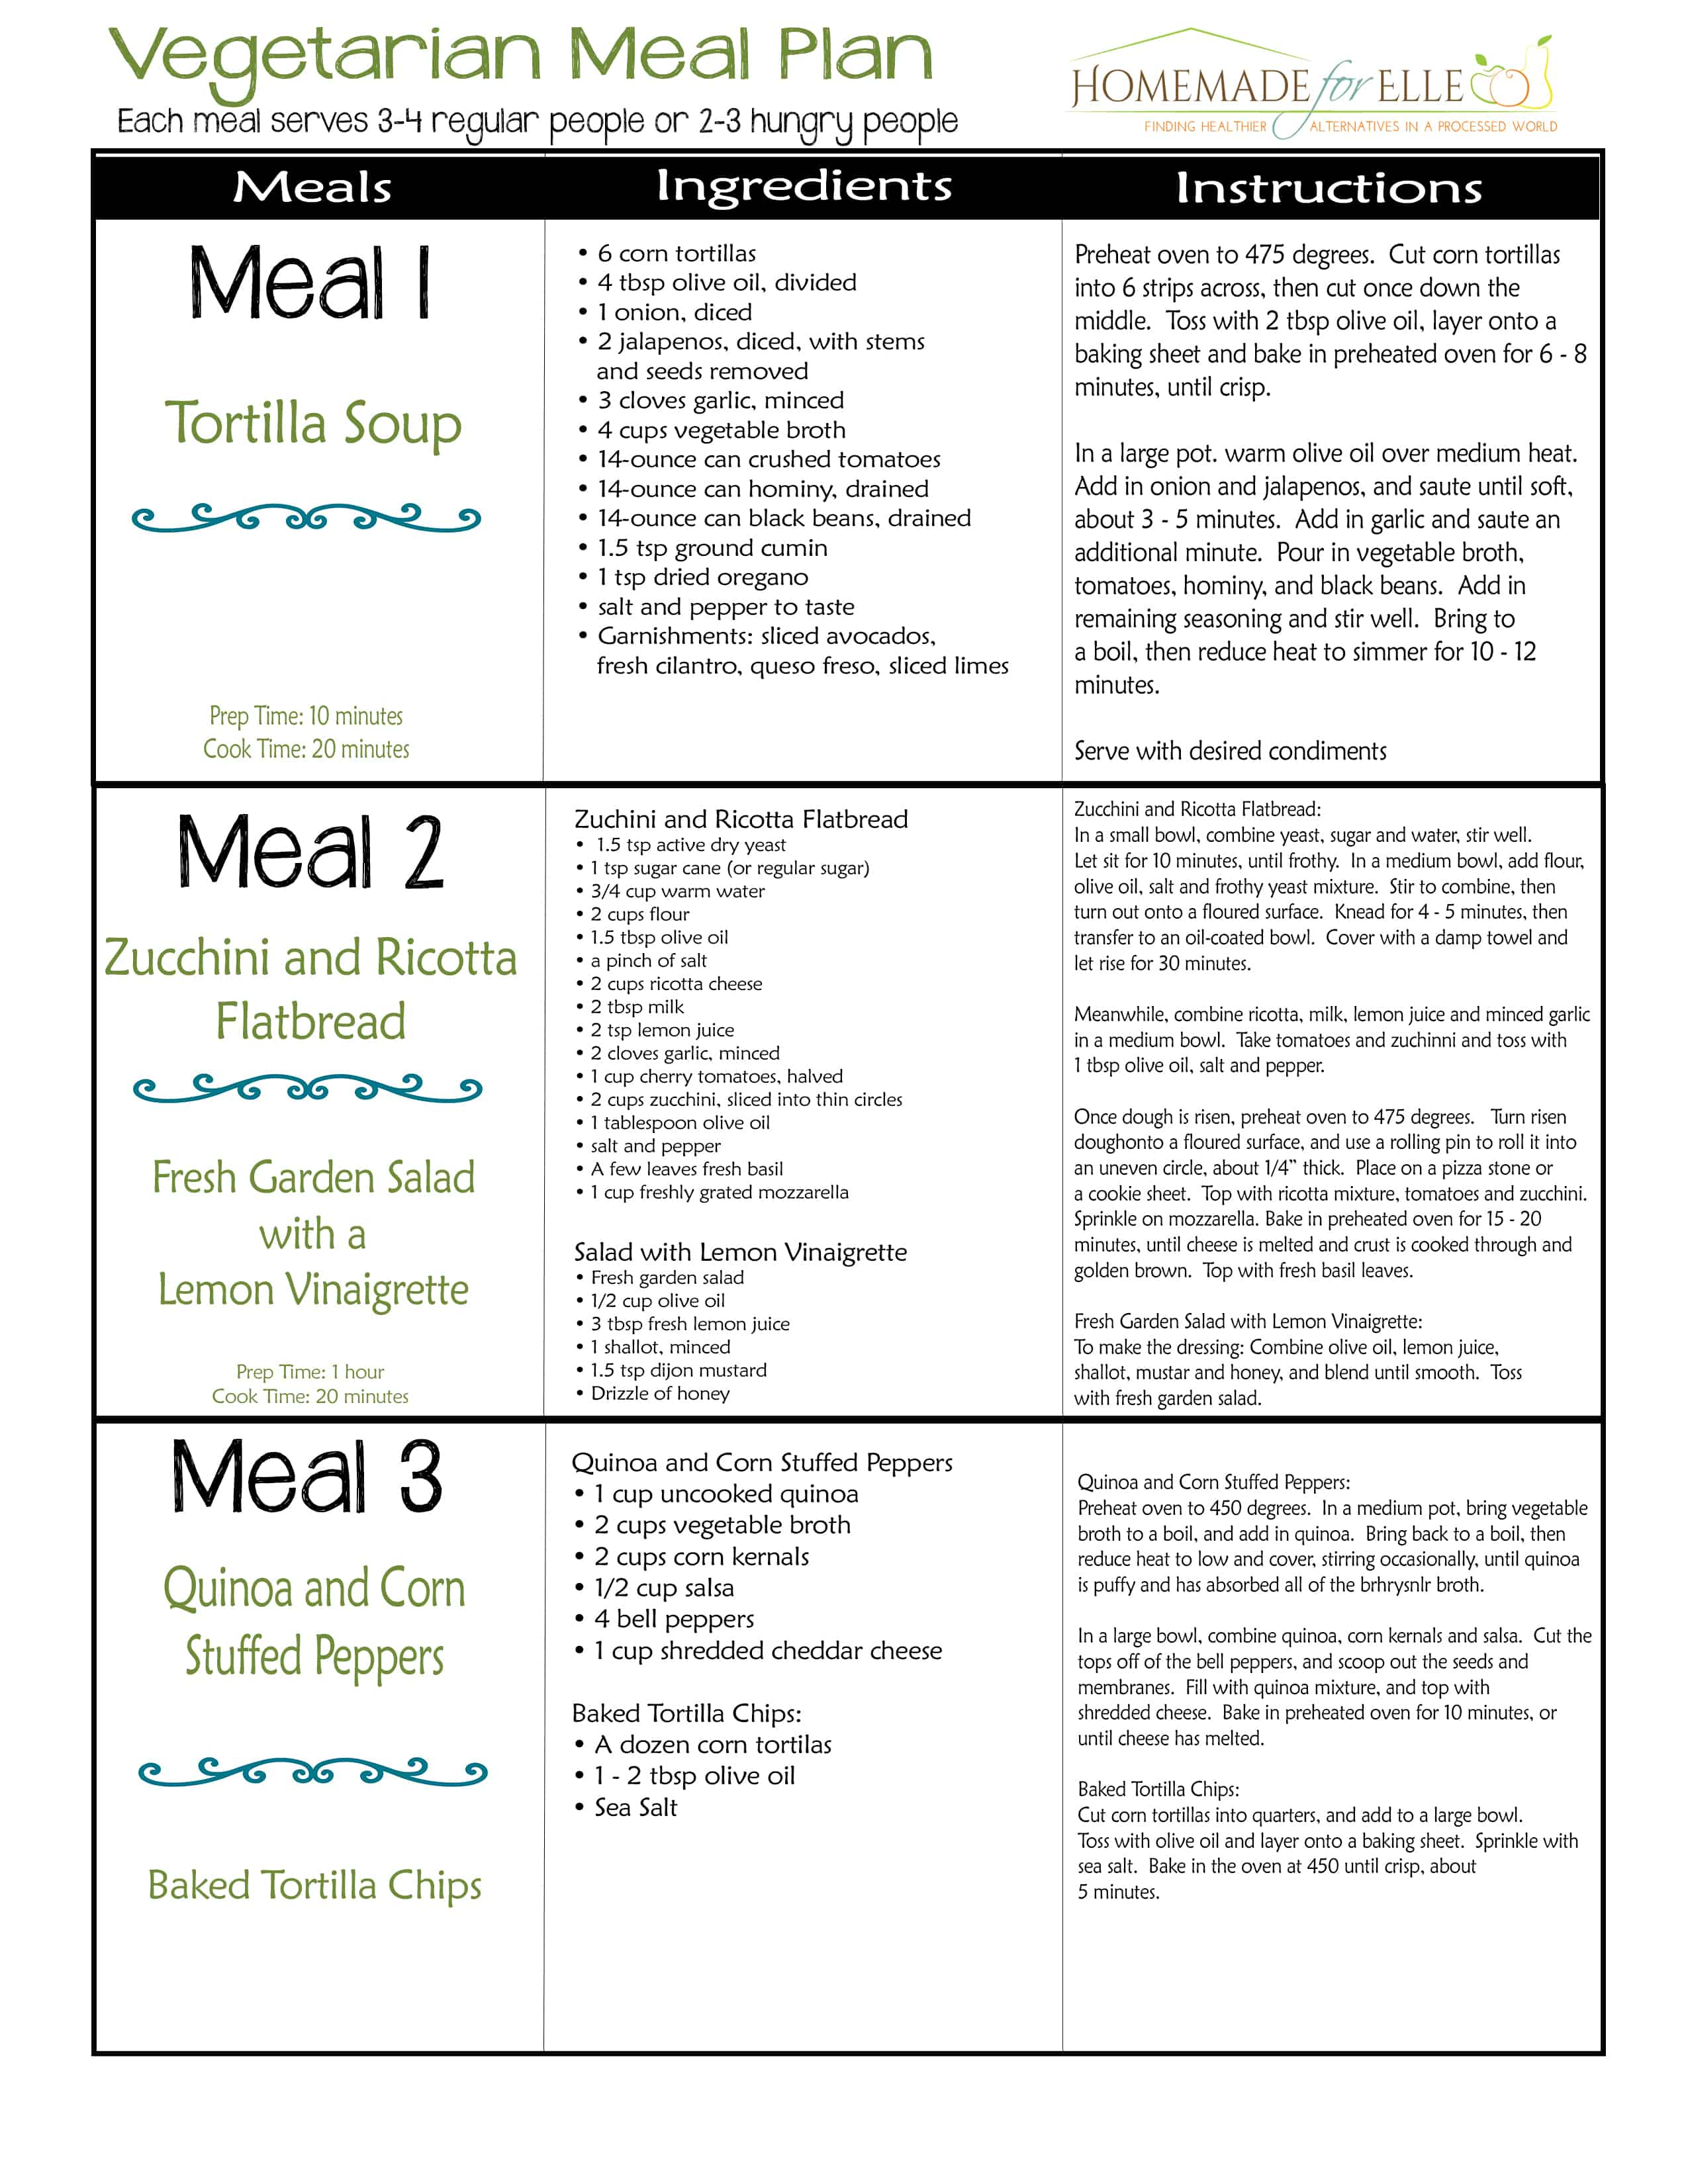 Vegetarian Meal Plan Page 1 Homemade For Elle